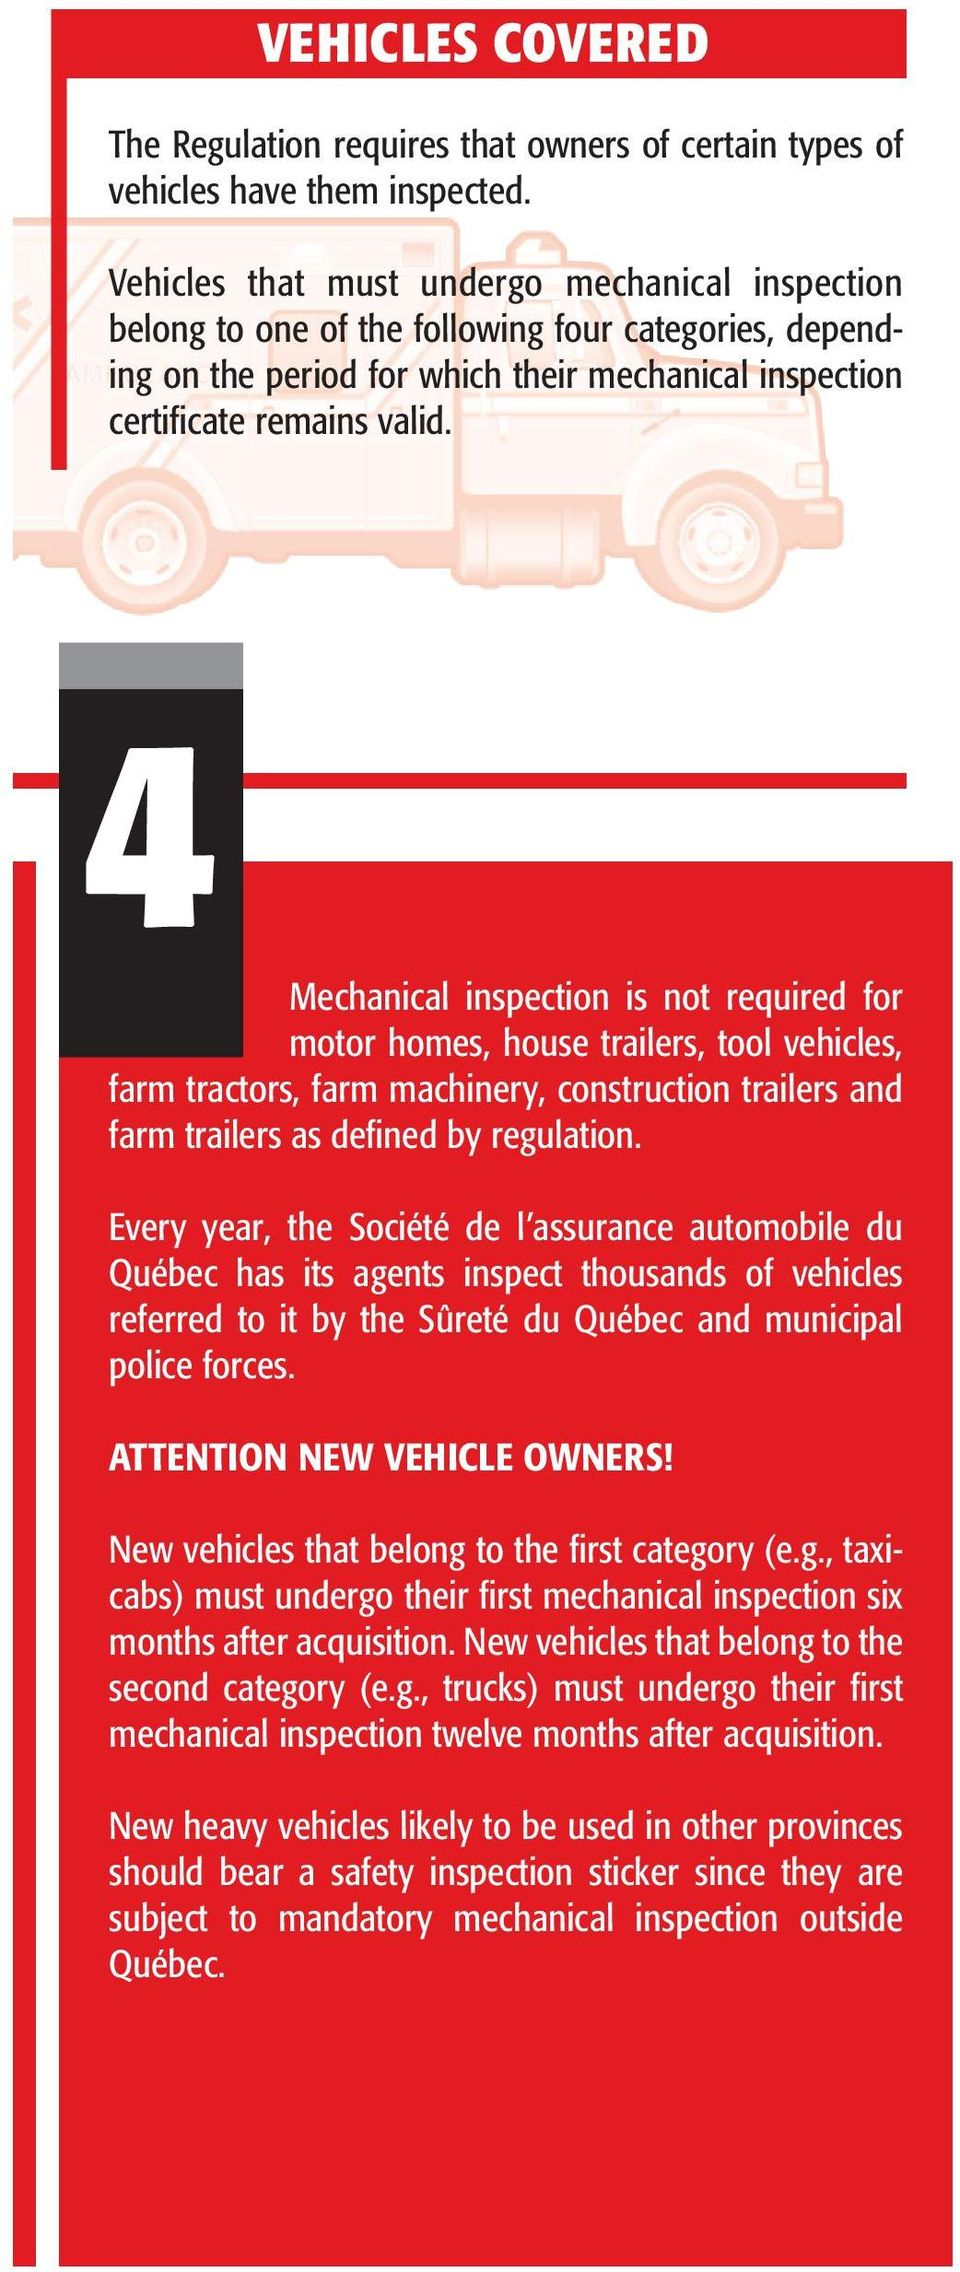 4 Mechanical inspection is not required for motor homes, house trailers, tool vehicles, farm tractors, farm machinery, construction trailers and farm trailers as defined by regulation.